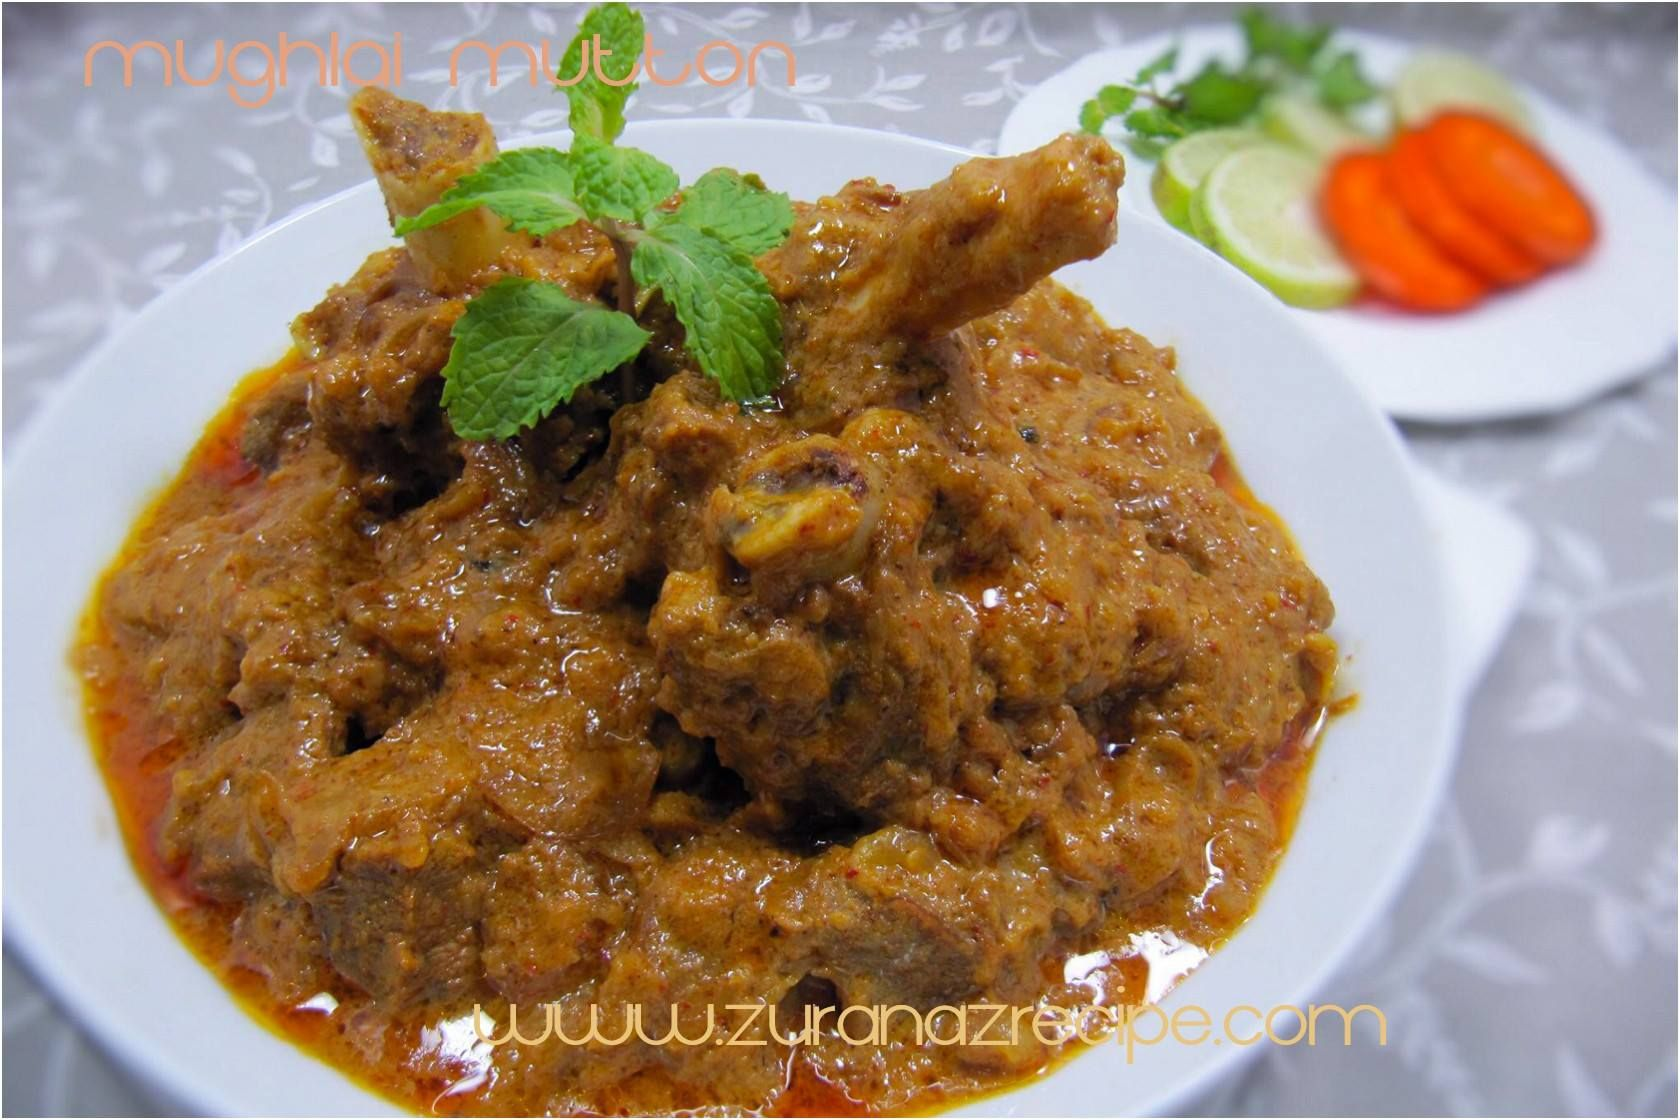 Mughlai mutton bangladeshi recipes pinterest bangladeshi mughlai mutton curry is a very popular dish mughlai food recipe comes from the kitchens of mughal empireis wonderful recipe is a restaurant style curry forumfinder Gallery